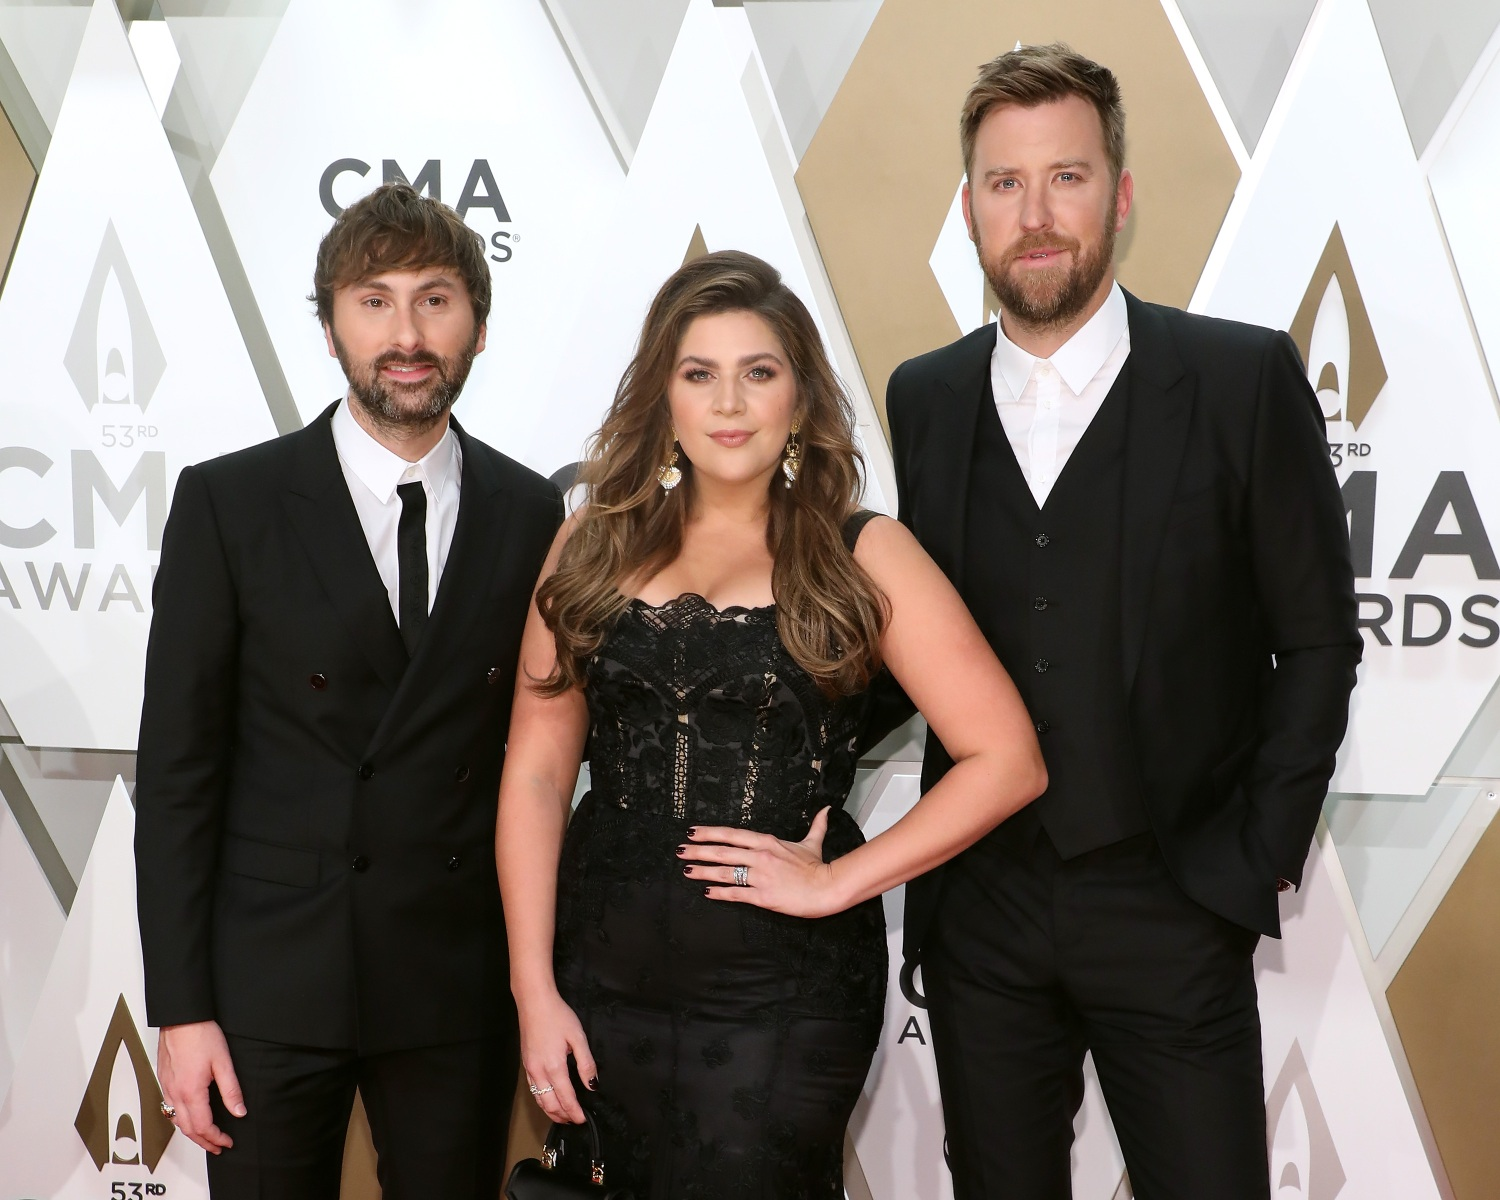 Dave Haywood, Hillary Scott, and Charles Kelley of Lady Antebellum attend the 53nd annual CMA Awards at Bridgestone Arena on November 13, 2019 in Nashville, Tennessee. (Photo by Taylor Hill/Getty Images)